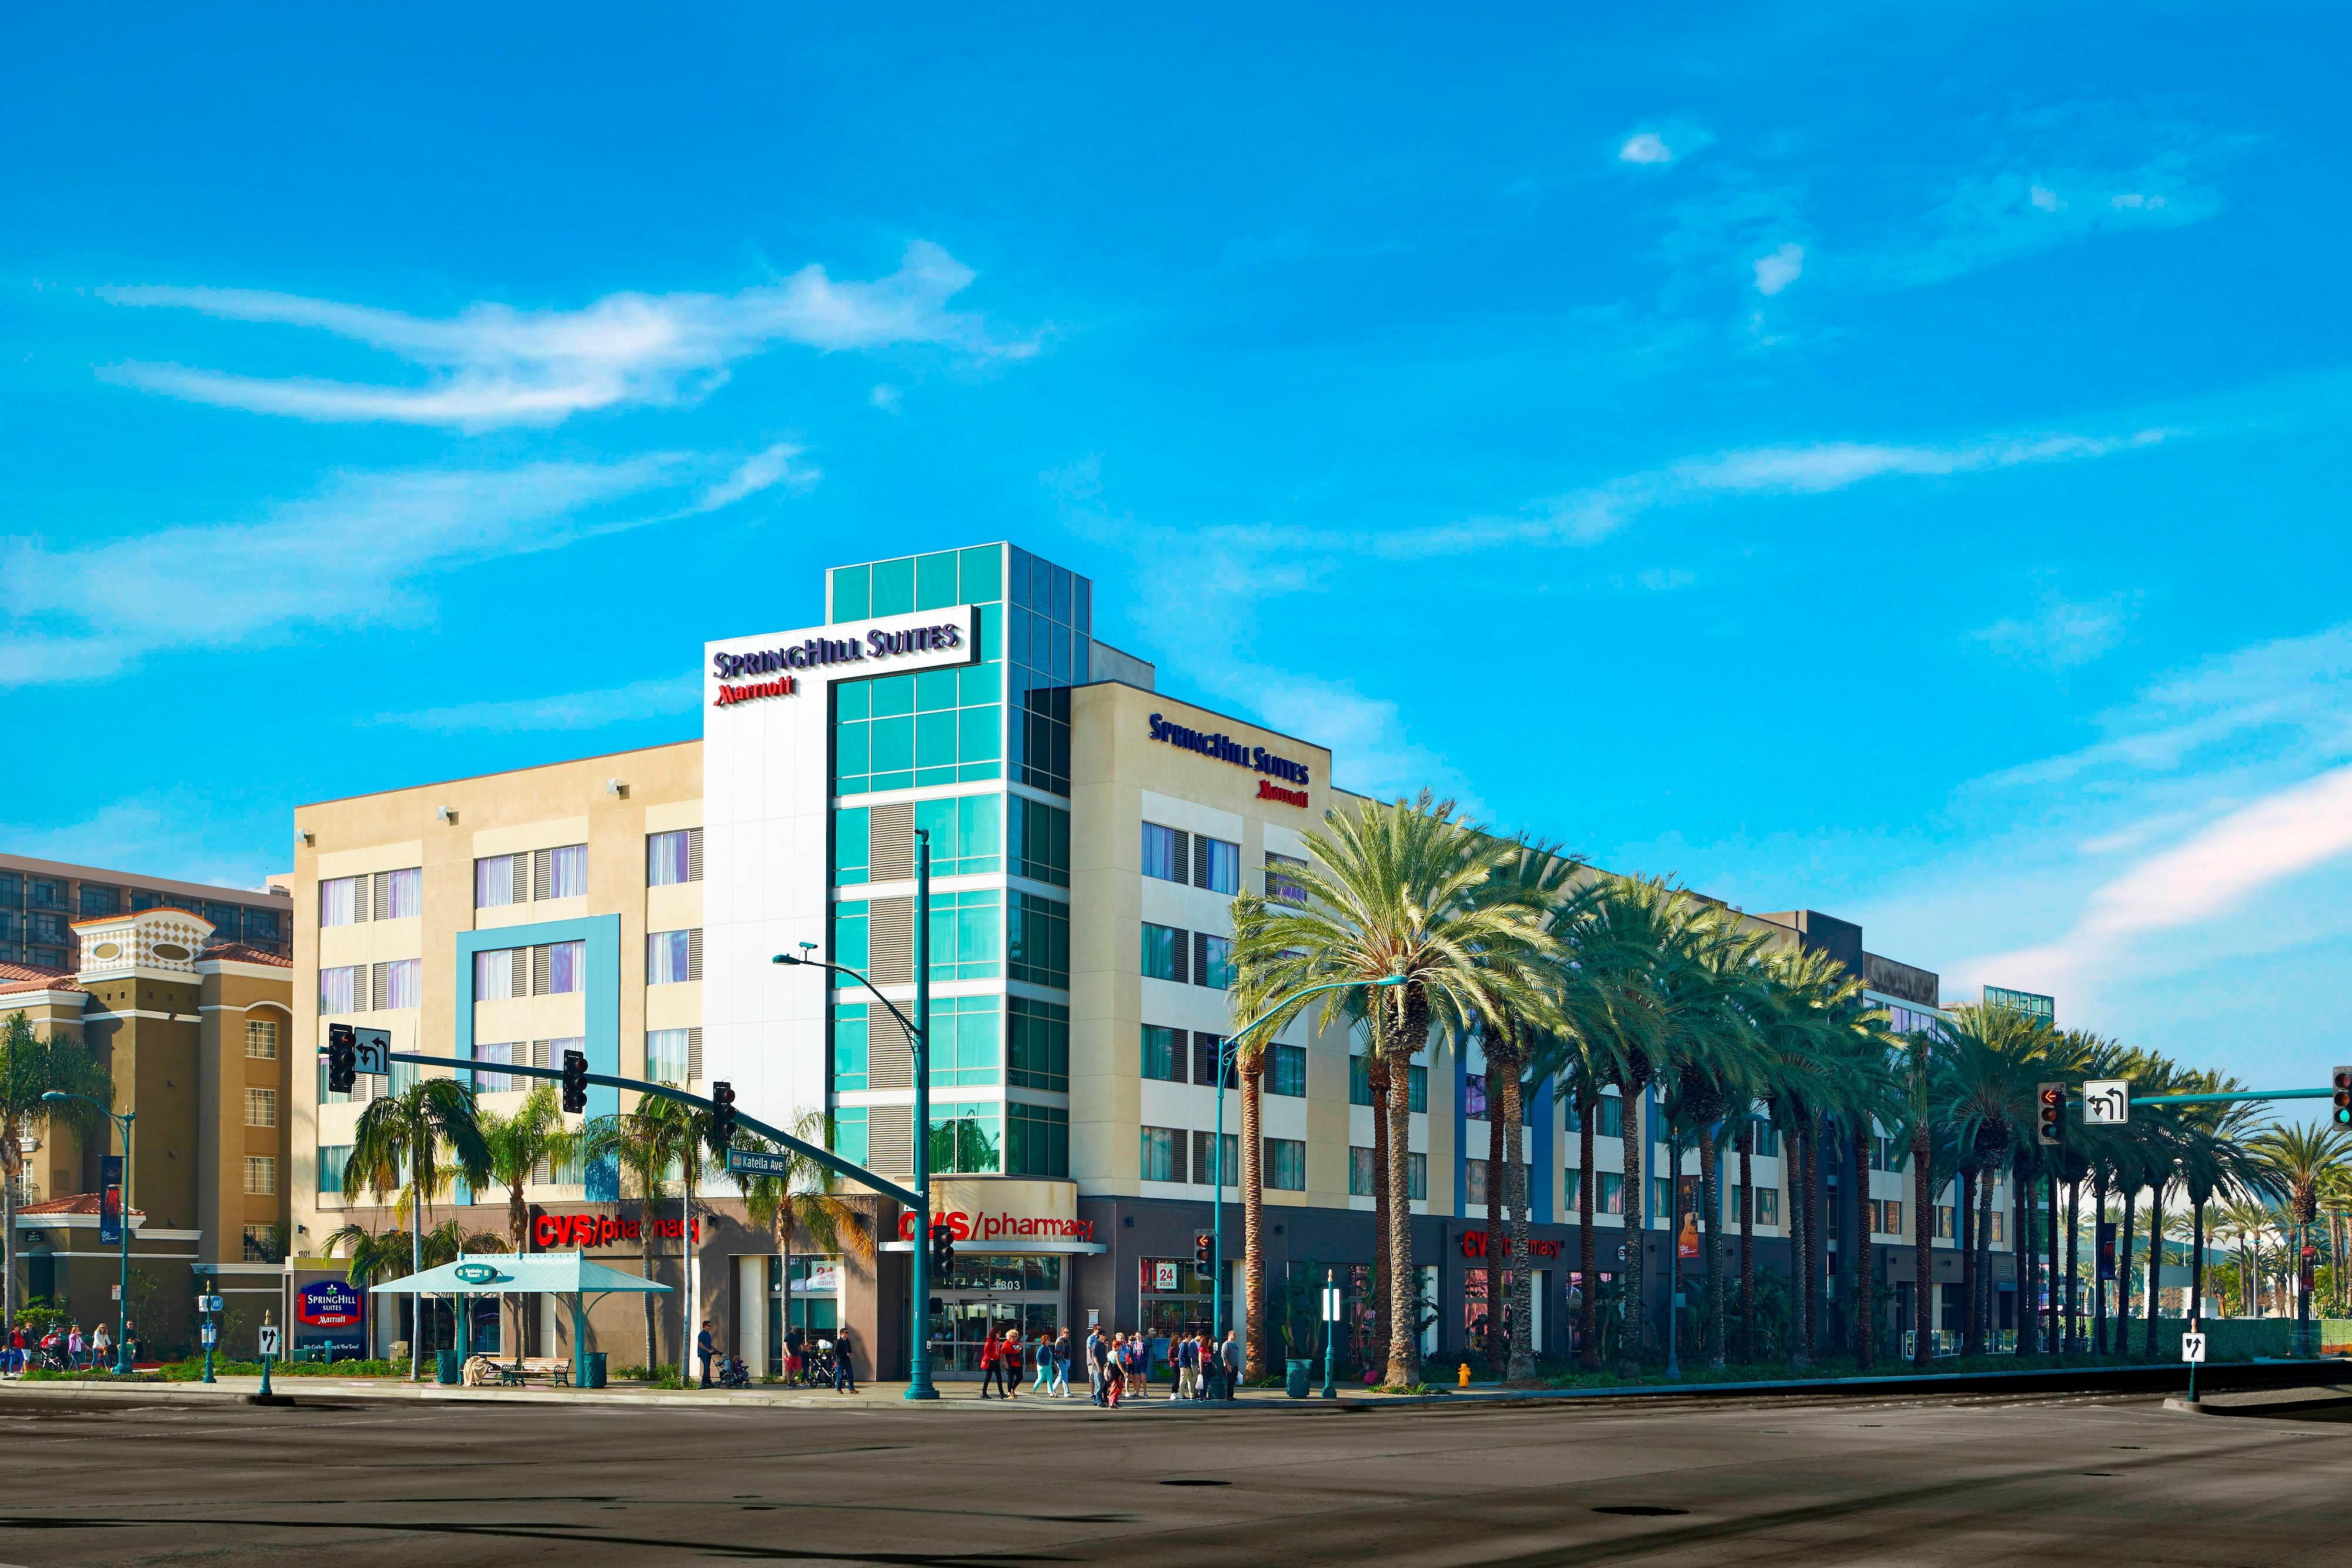 Springhill Suites at Anaheim Resort/Convention Center Hotel Exterior Day View